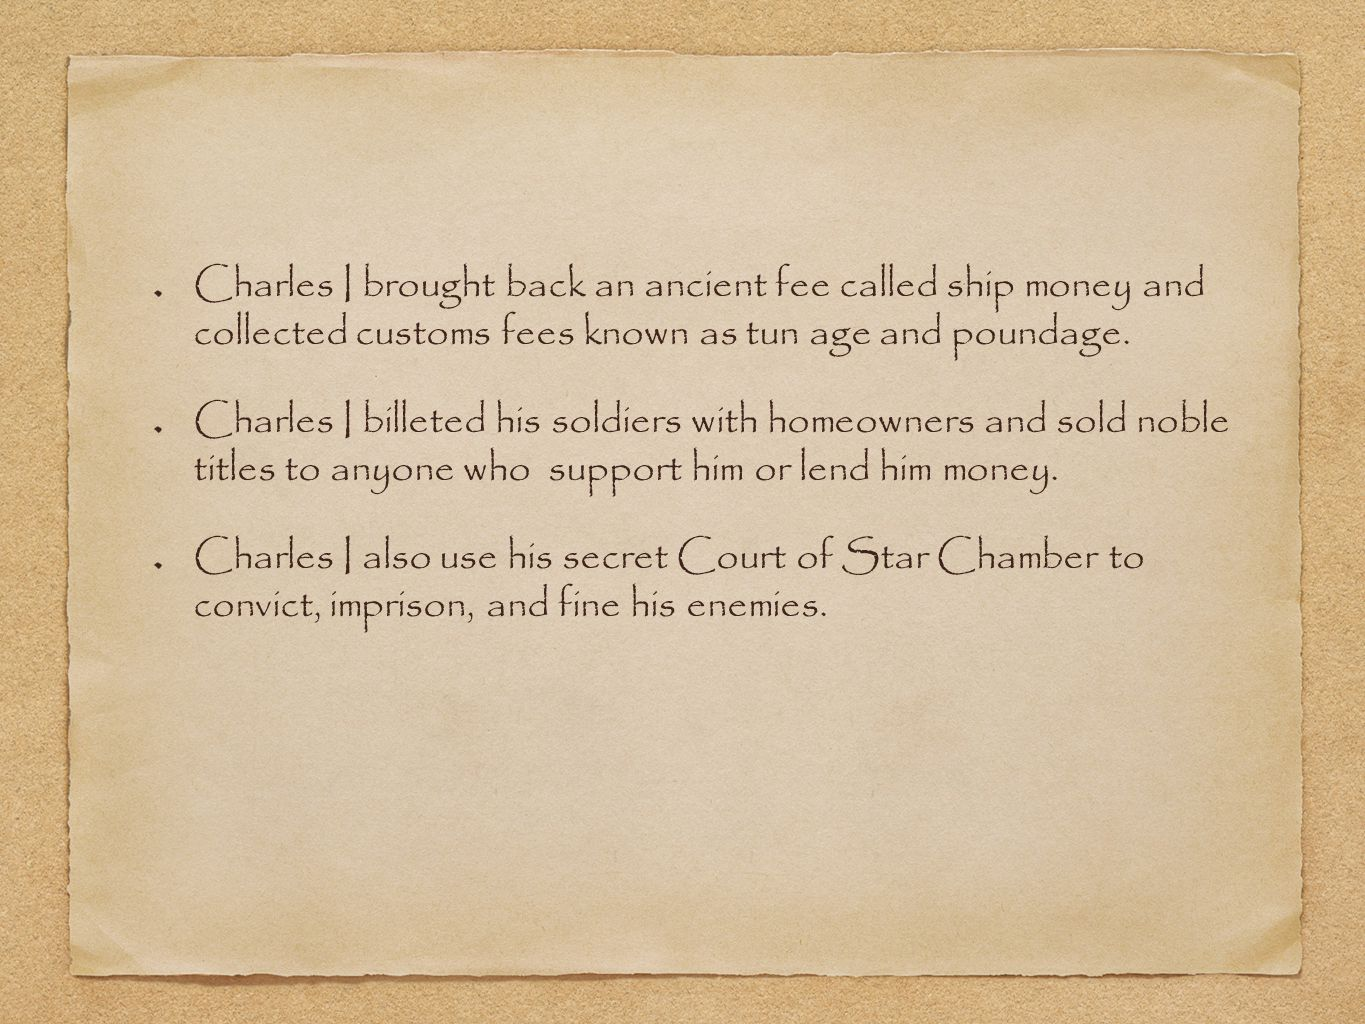 Charles I brought back an ancient fee called ship money and collected customs fees known as tun age and poundage.